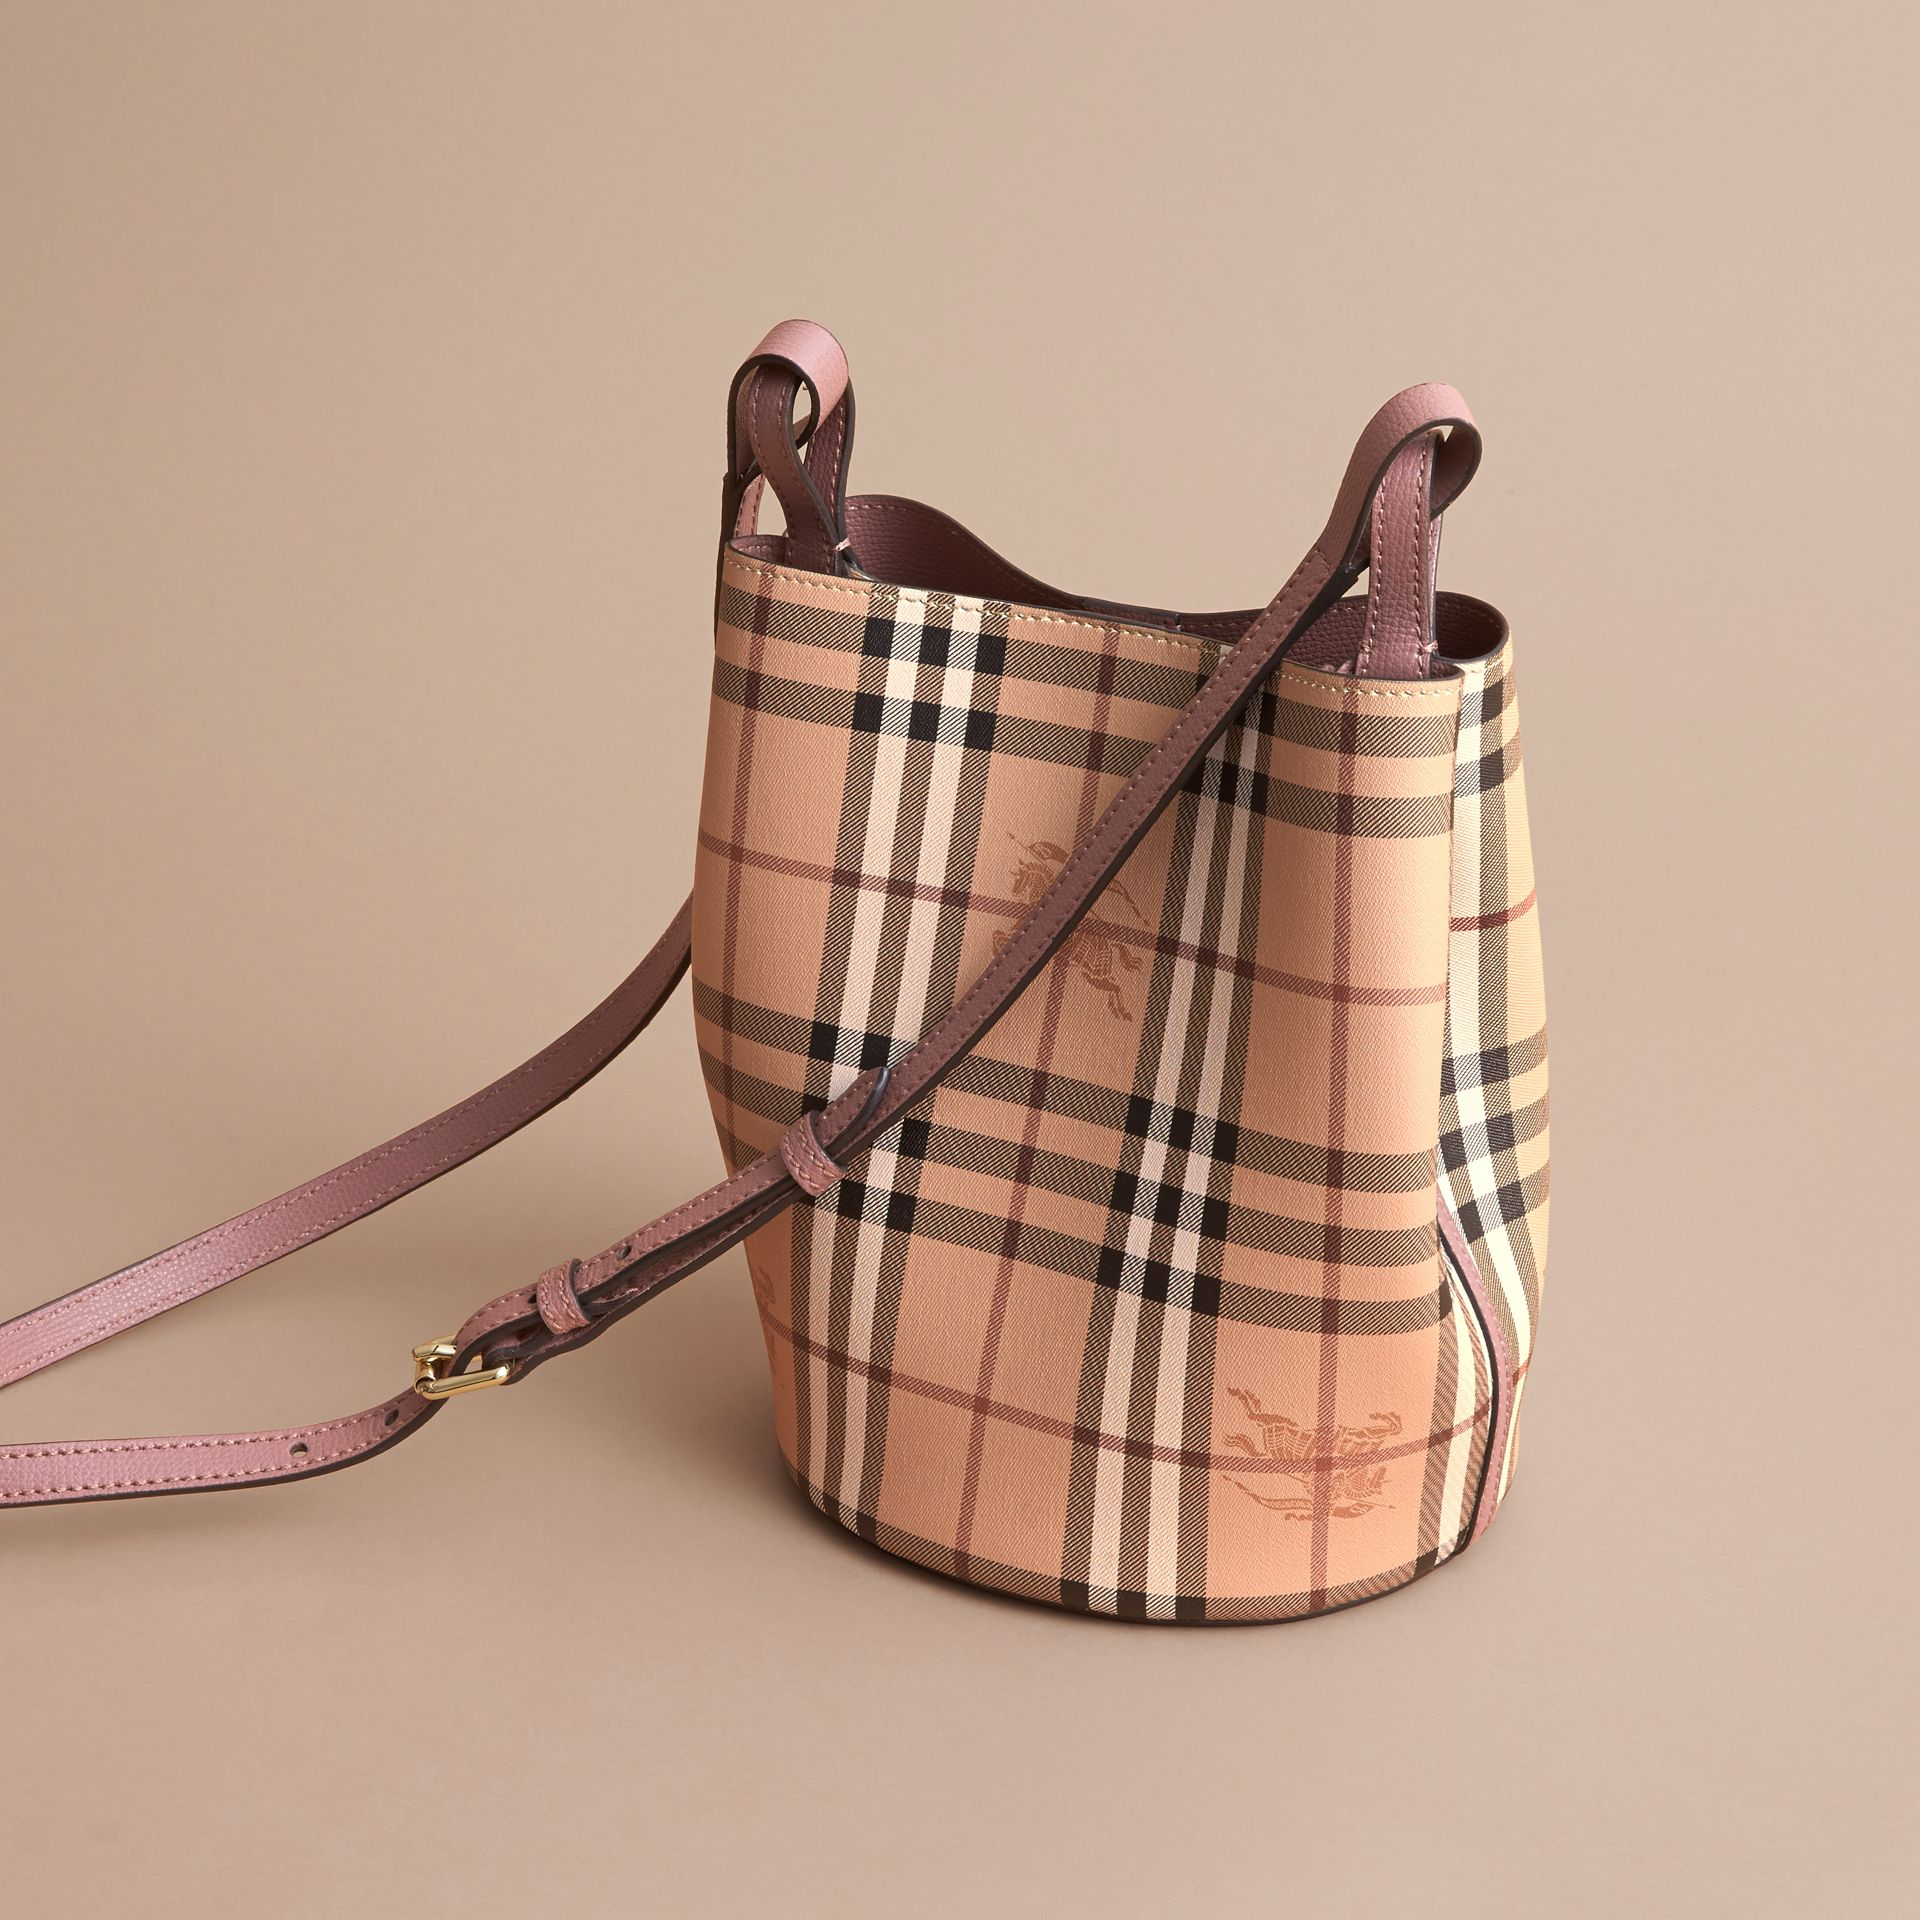 3e5c5ccb6 Leather and Haymarket Check Crossbody Bucket Bag in Light Elderberry -  Women | Burberry United .